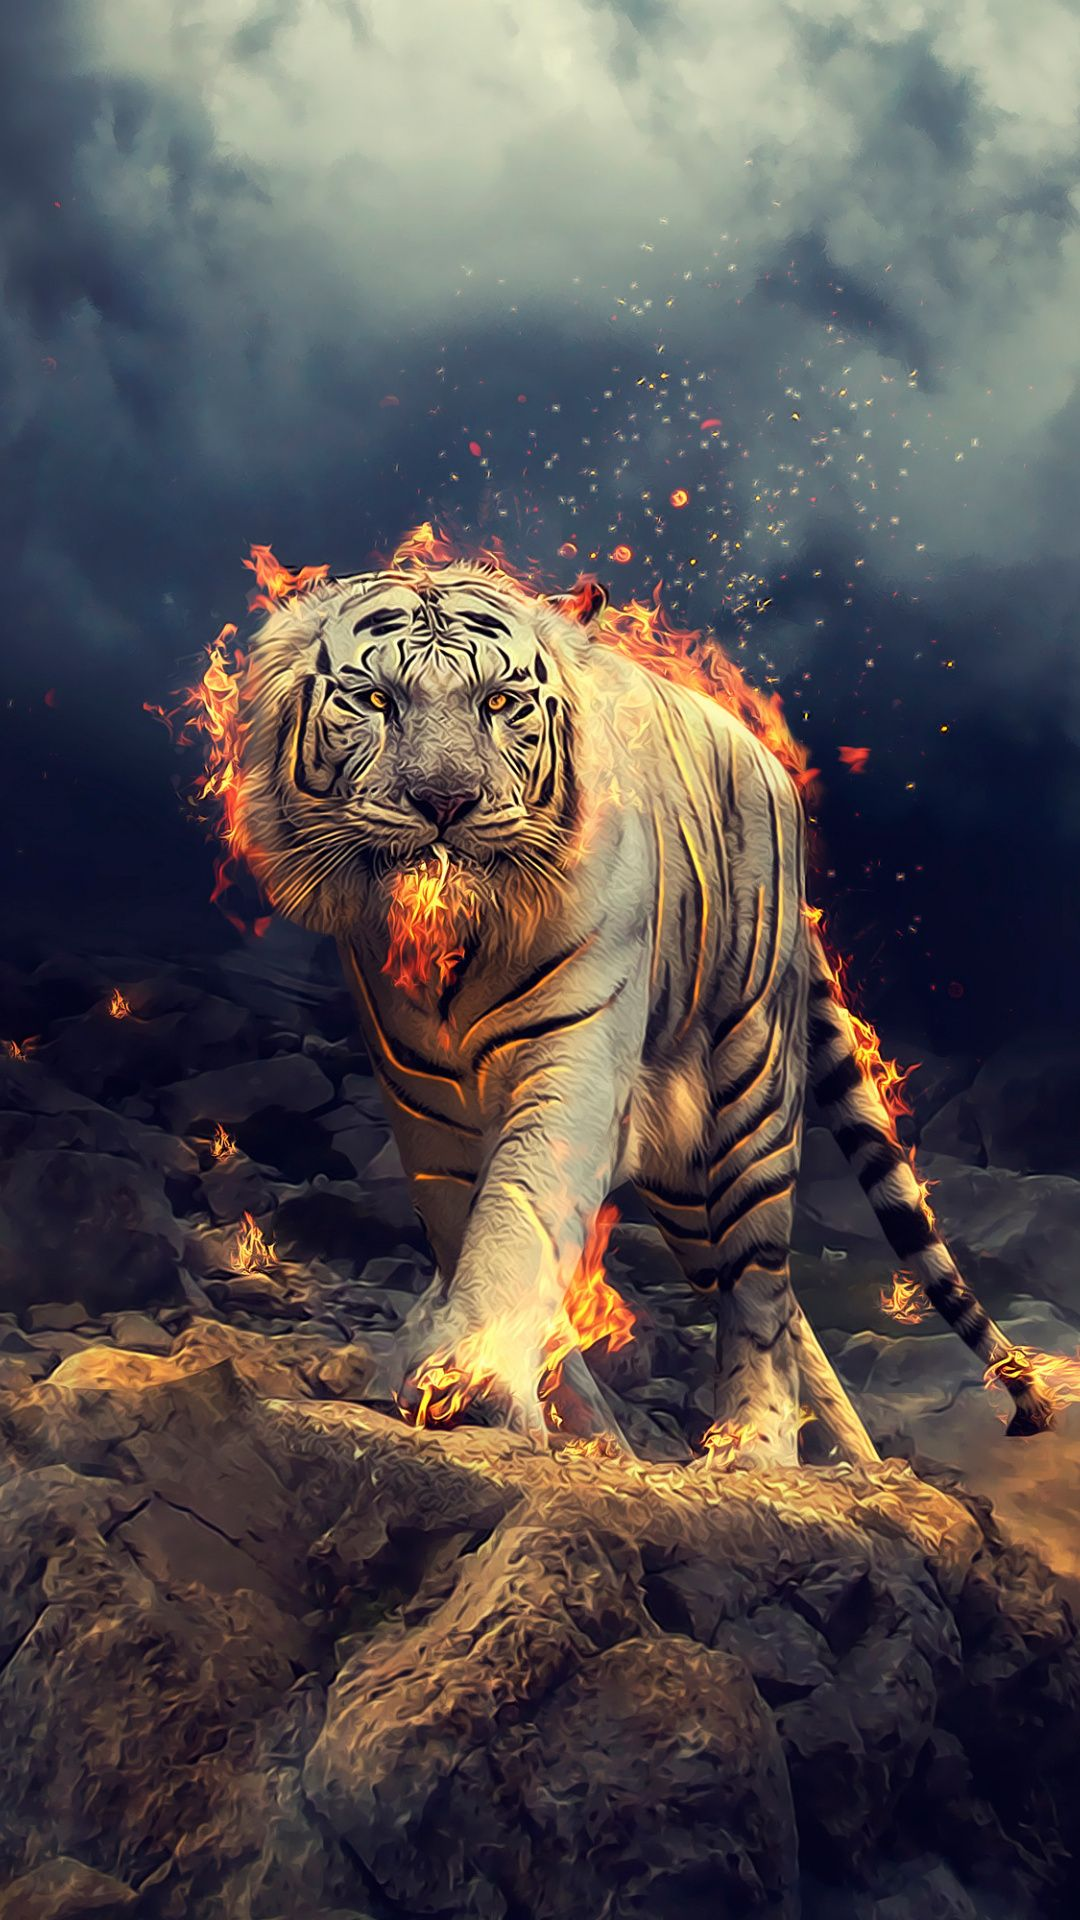 Angry Raging White Tiger 1080x1920 Wallpaper Tiger Wallpaper Wild Animal Wallpaper Lion Wallpaper